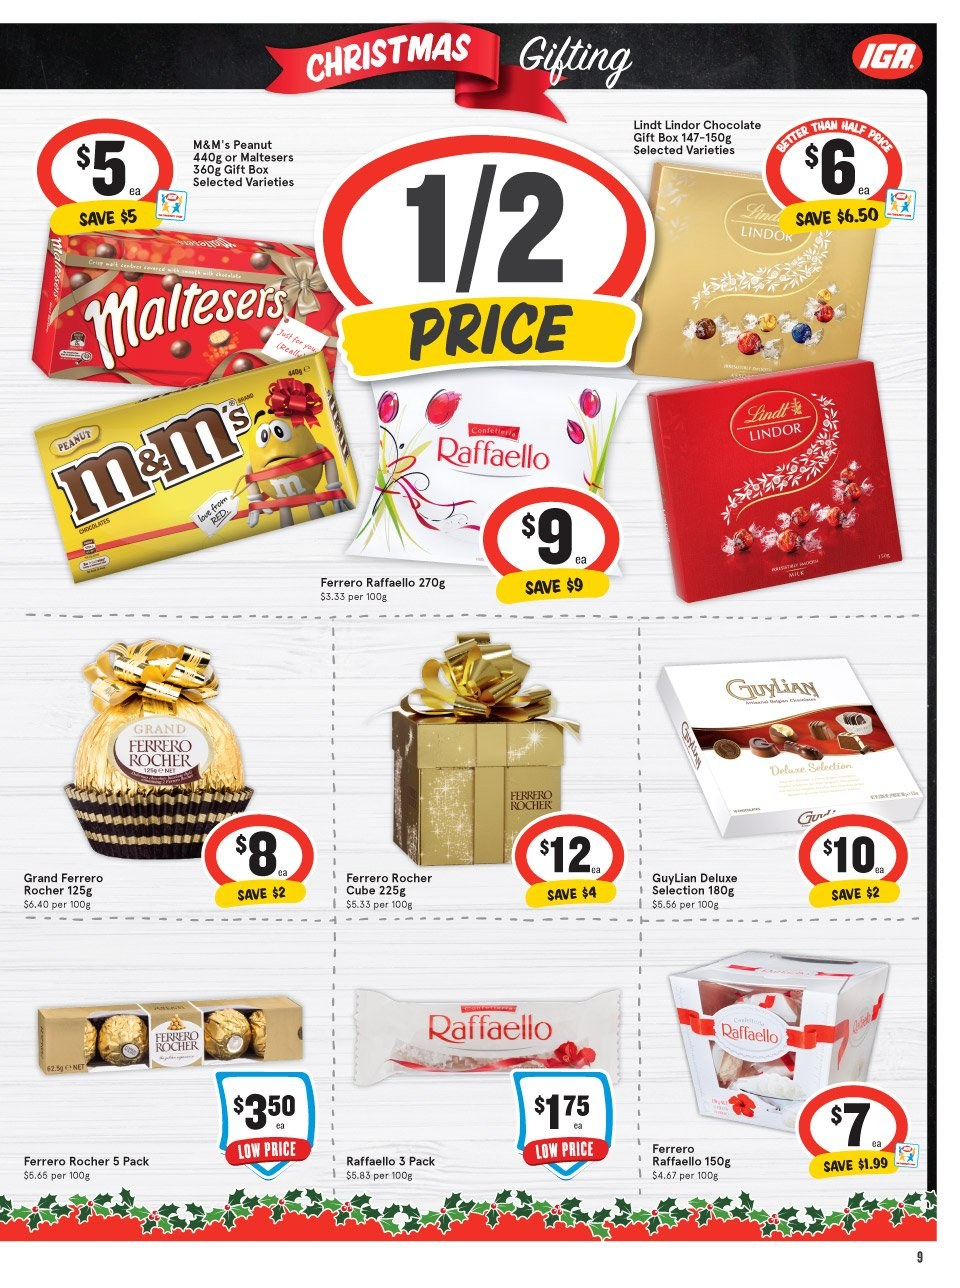 IGA Catalogue - 5.12.2018 - 11.12.2018 - Sales products - box, grand, peanuts, chocolate. Page 9.